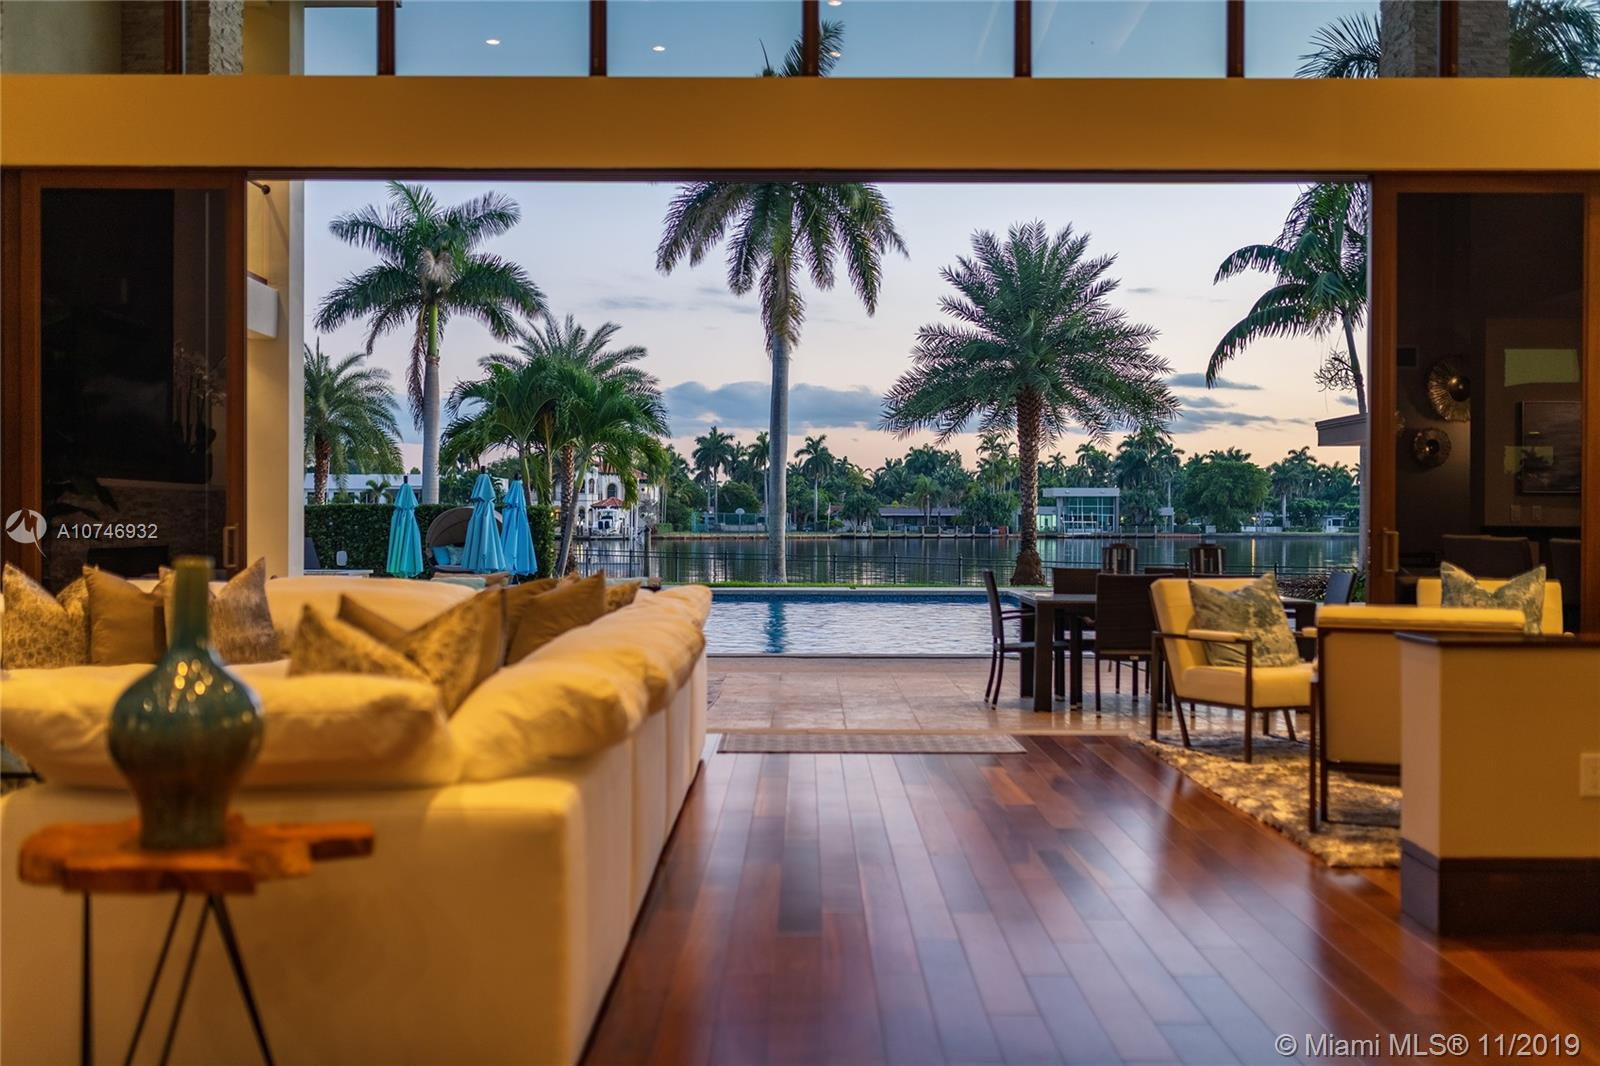 Tropical Modern Estate situated between Miami & Ft Laud, totaling approx 8k sq. ft., 6 bedrms/6.5 unique baths w/wide water views in every room & resort-style pool w/25k lot.  No fixed bridges, large dock w/20k lbs boat lift & 160' on water.  Summer kitchen, large hot tub, tanning shelf, & fire pit, full bar, gourmet kitchen; spa master bath,2 water closets & multi-person shower.  Bedrooms have full en-suite baths & 6th bedrm is attached via covered walkway & gym/office/in-law suite.  Windows & sliders are hurricane-impact & UV protected, the walls are concrete block construction & 2nd story has concrete floor. 5 AC zones, fireplace in living rm & master bdrm & Crestron lighting systm. 3 car garage,ample guest parking in governor's drivewy. Visit Juana Drago YouTube for Video Tour.